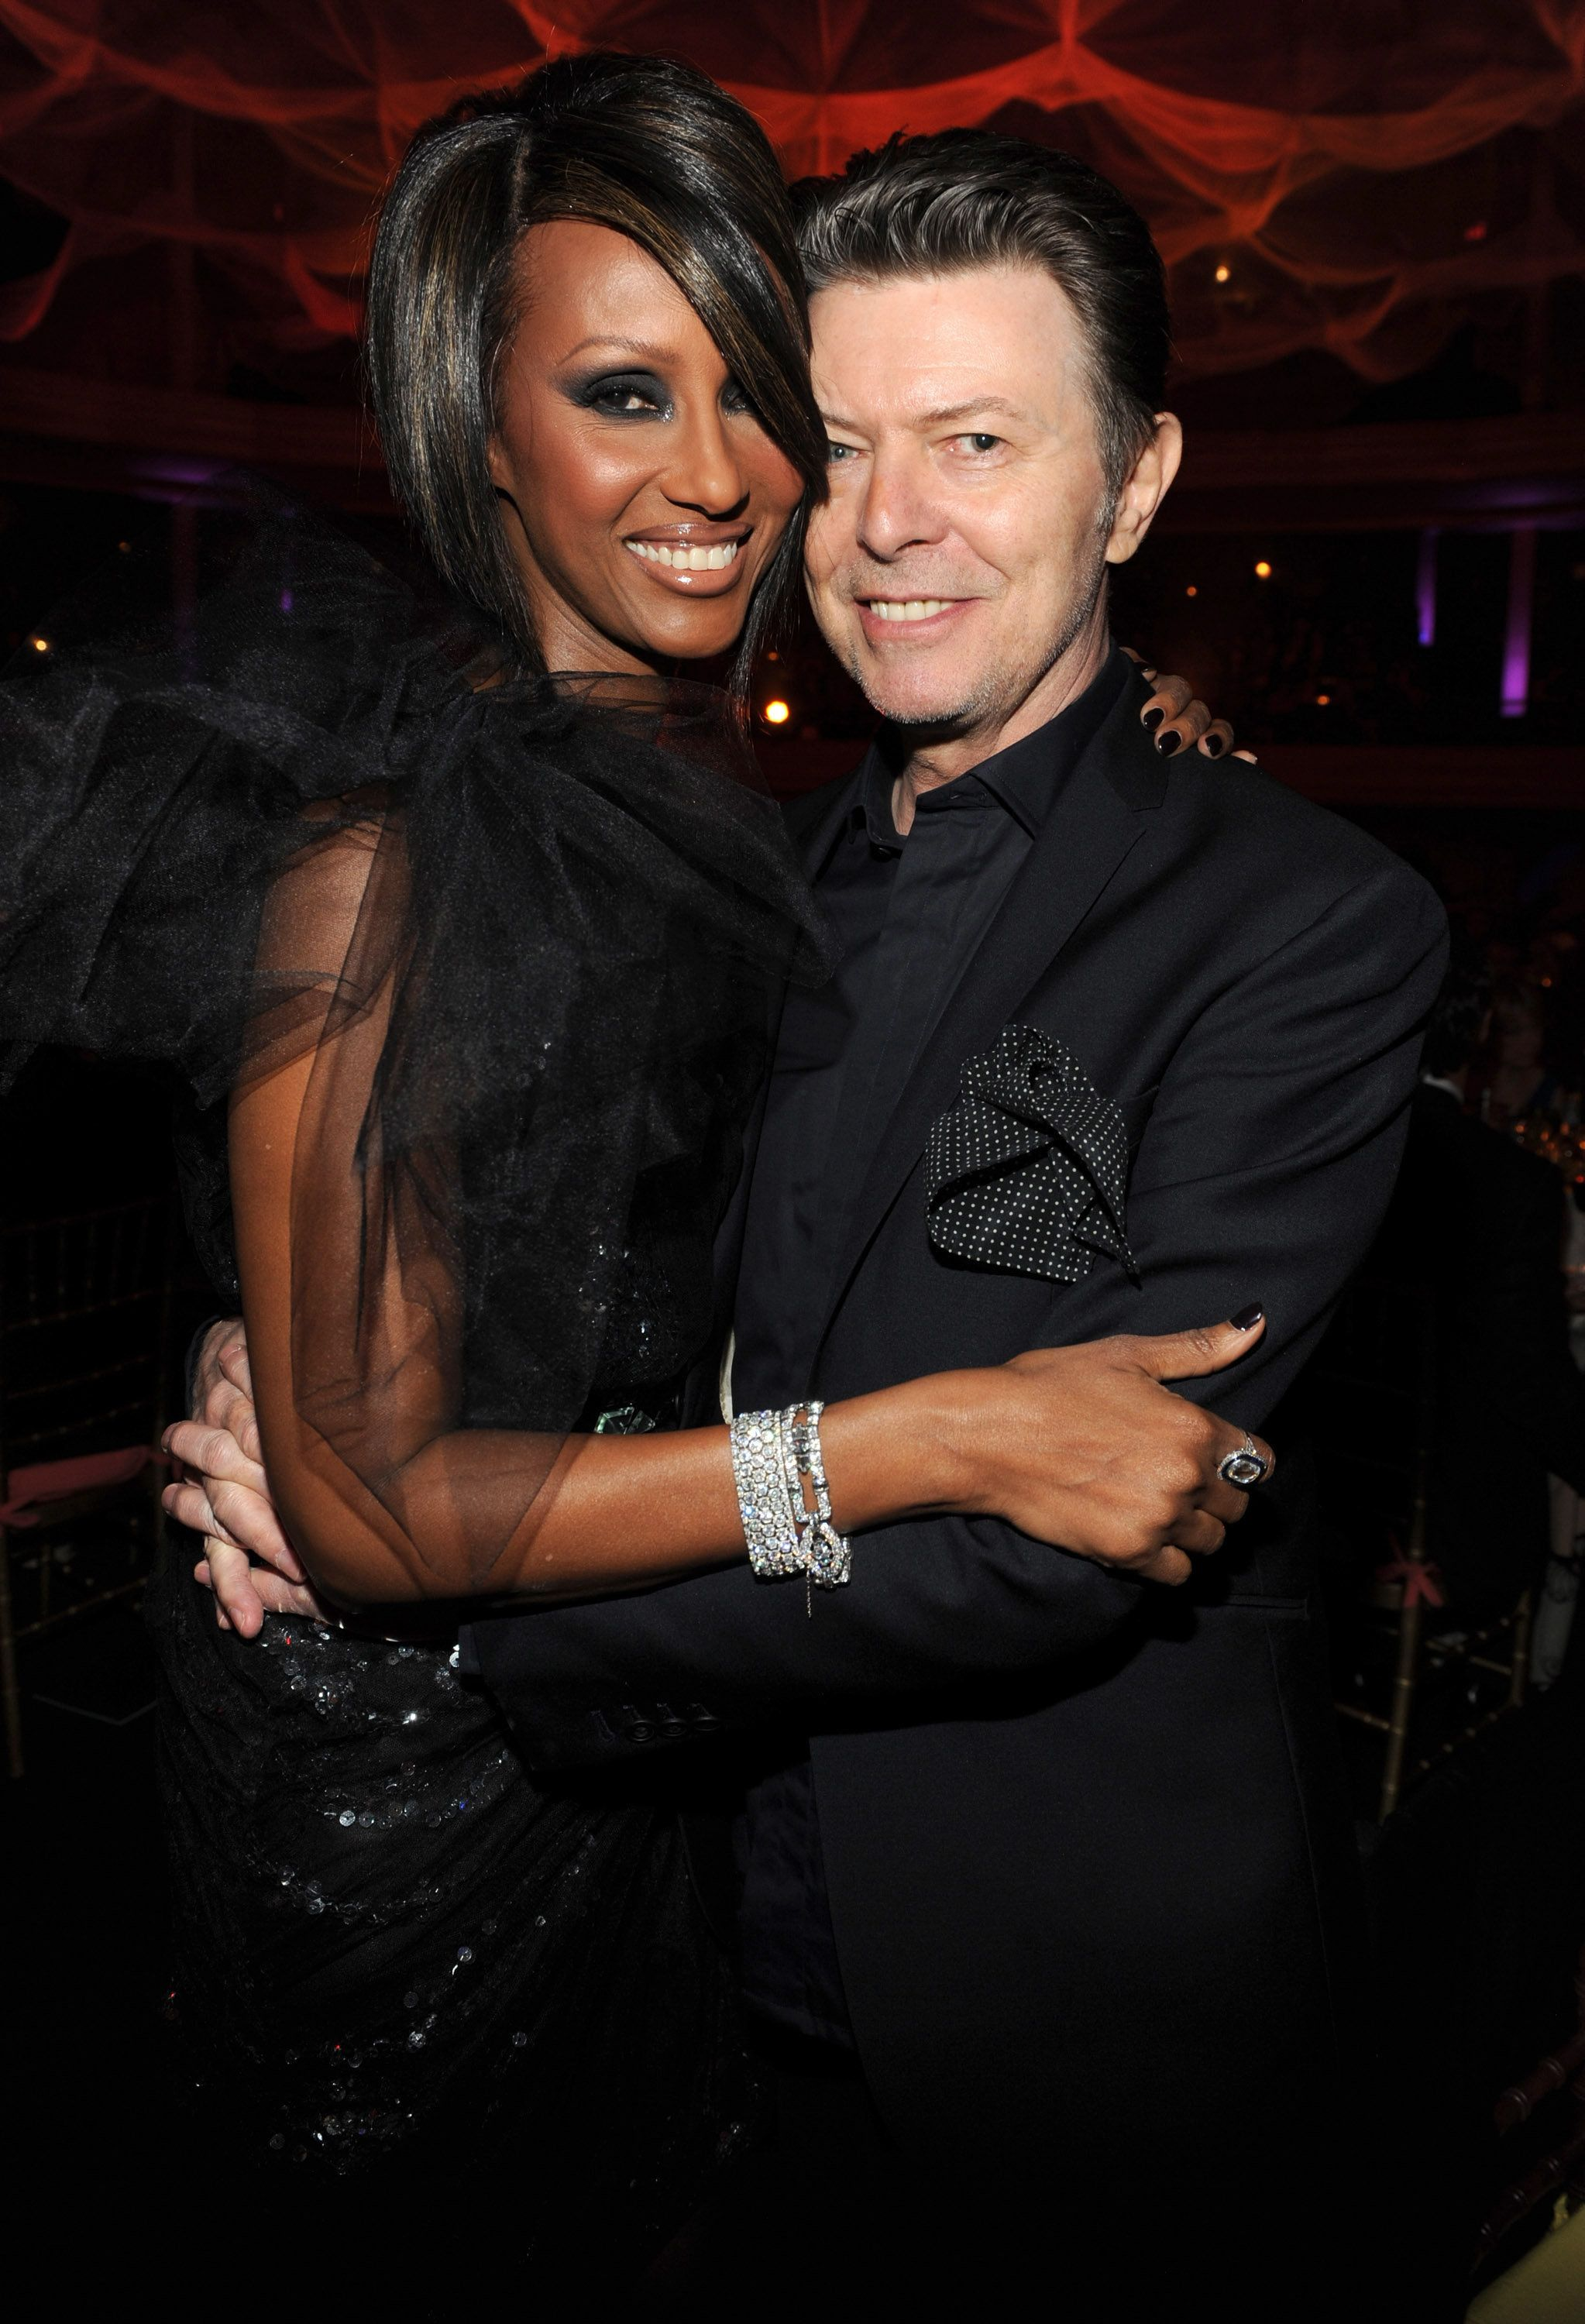 (EXCLUSIVE, Premium Rates Apply) NEW YORK - OCTOBER 15:  *Exclusive* Iman and David Bowie at Hammerstein Ballroom during Keep A Child Alive's 6th Annual Black Ball hosted by Alicia Keys and Padma Lakshmi on October 15, 2009 in New York City.  (Photo by Kevin Mazur/WireImage)